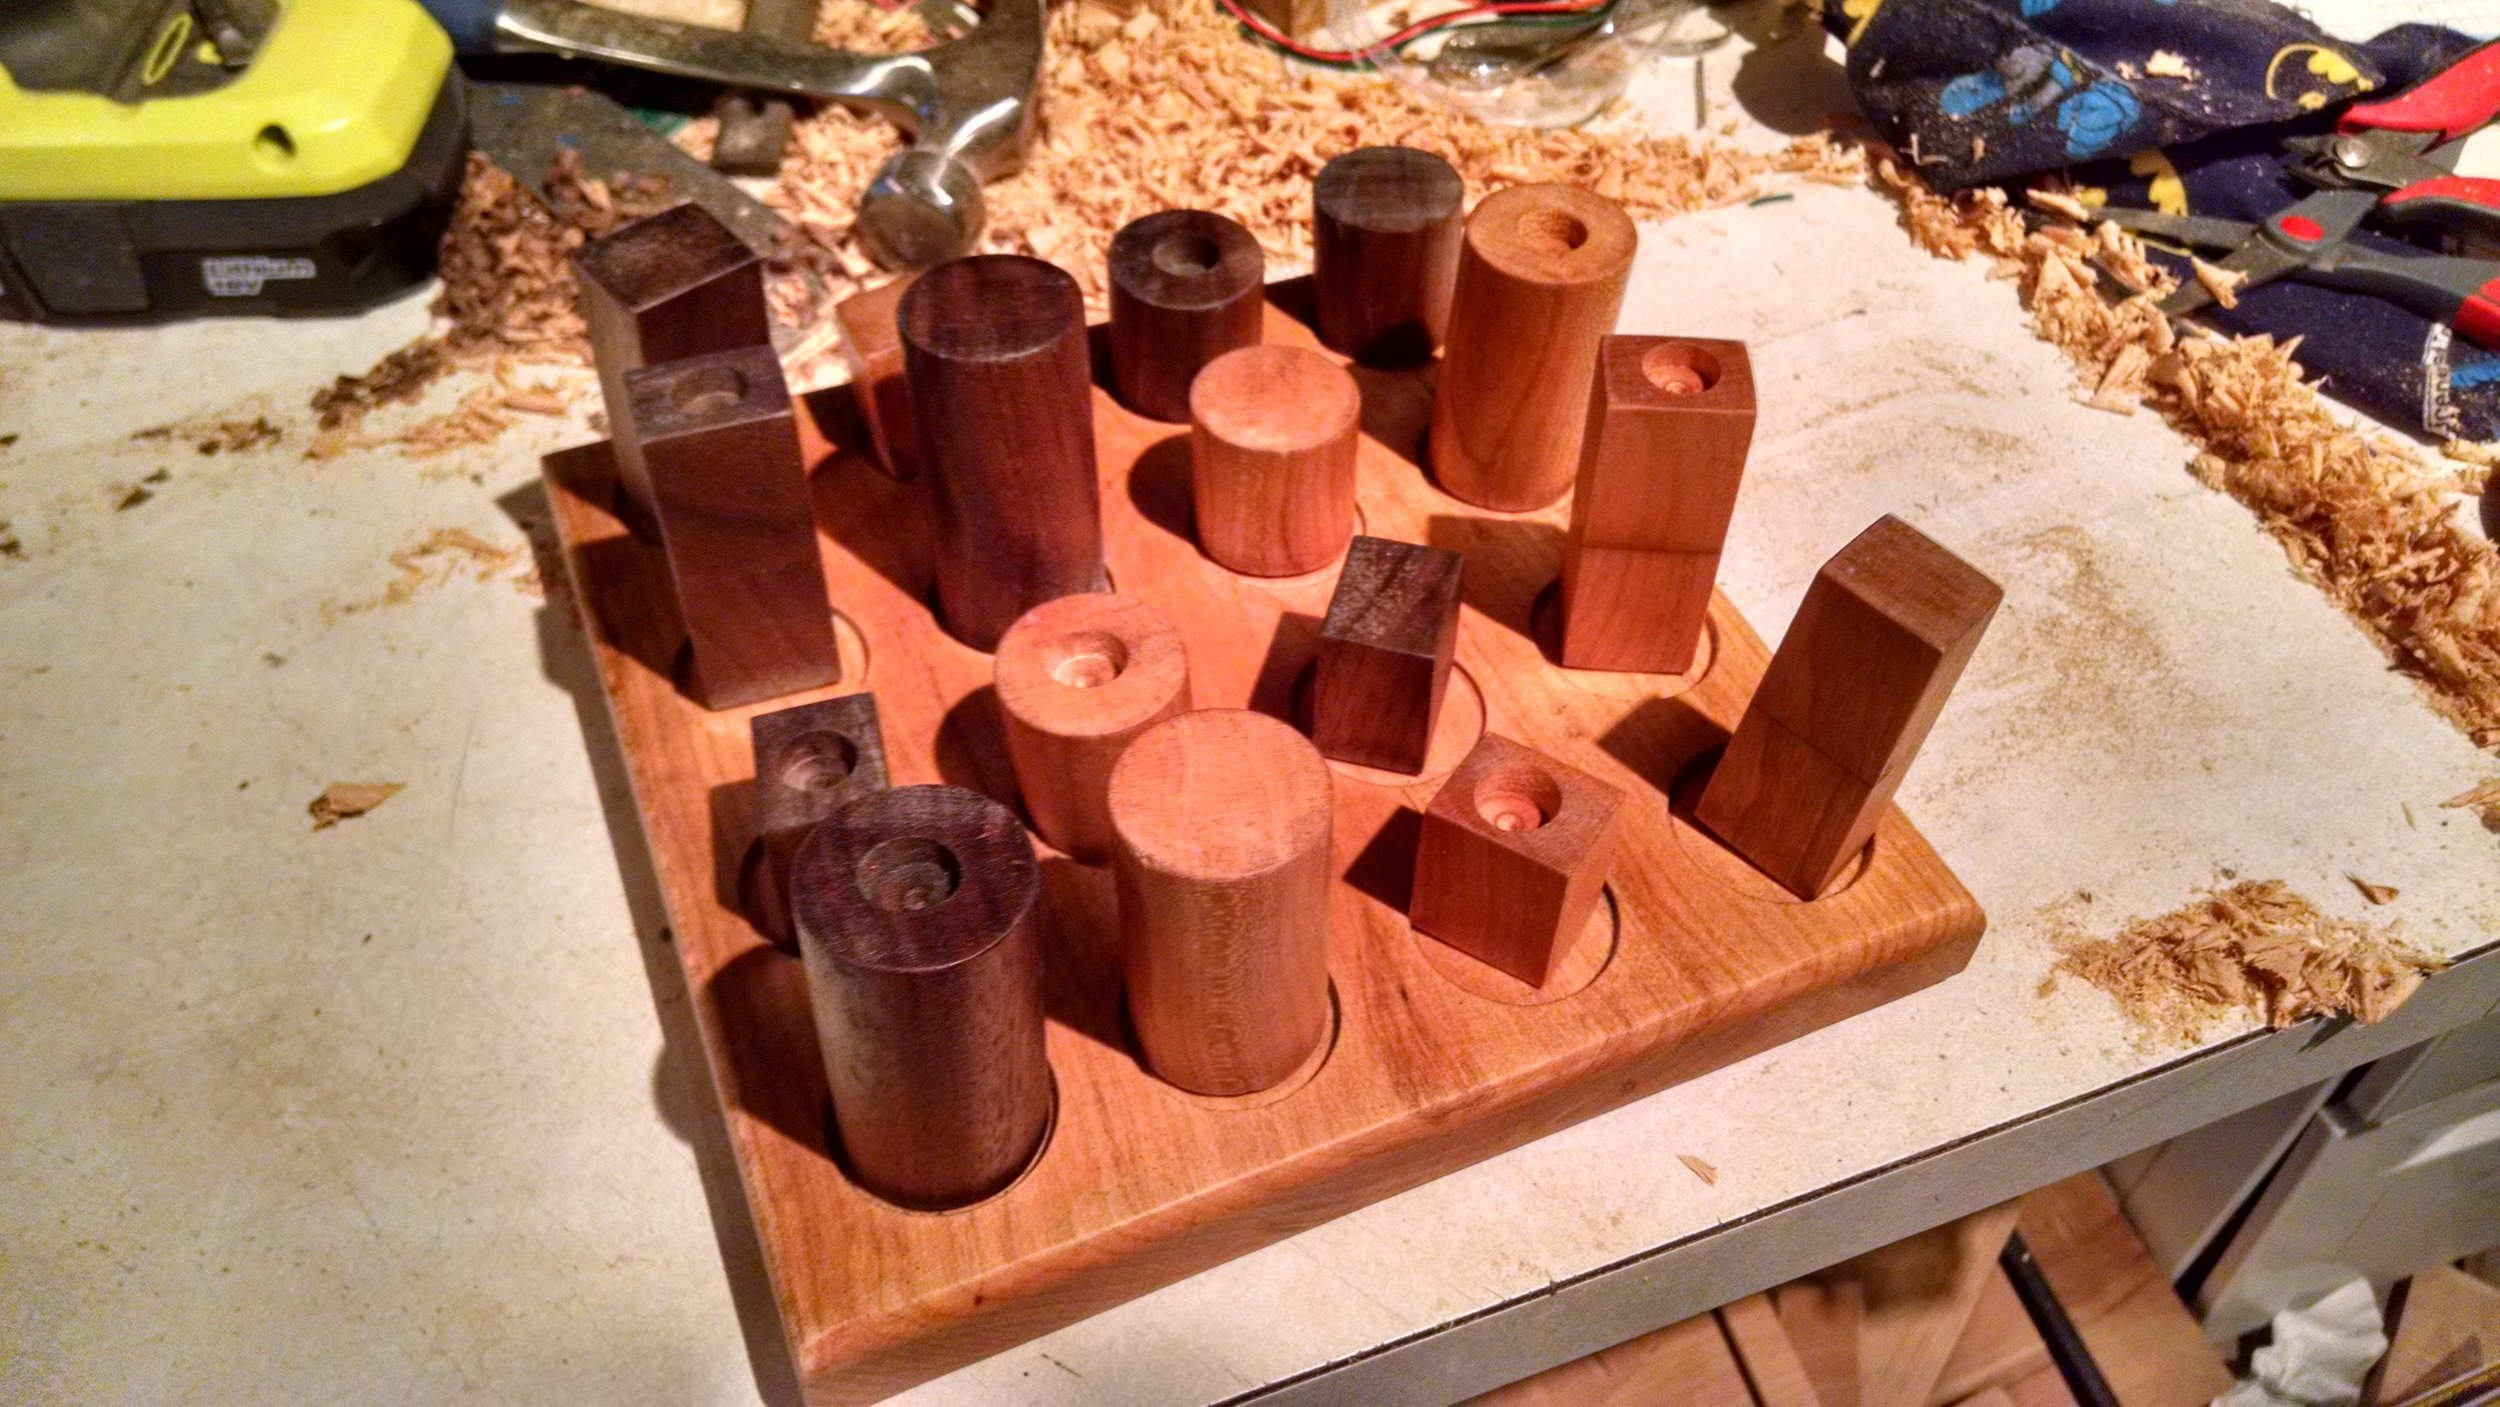 I made this cherry and walnut game called Quarto as a Christmas present for my niece and nephew.